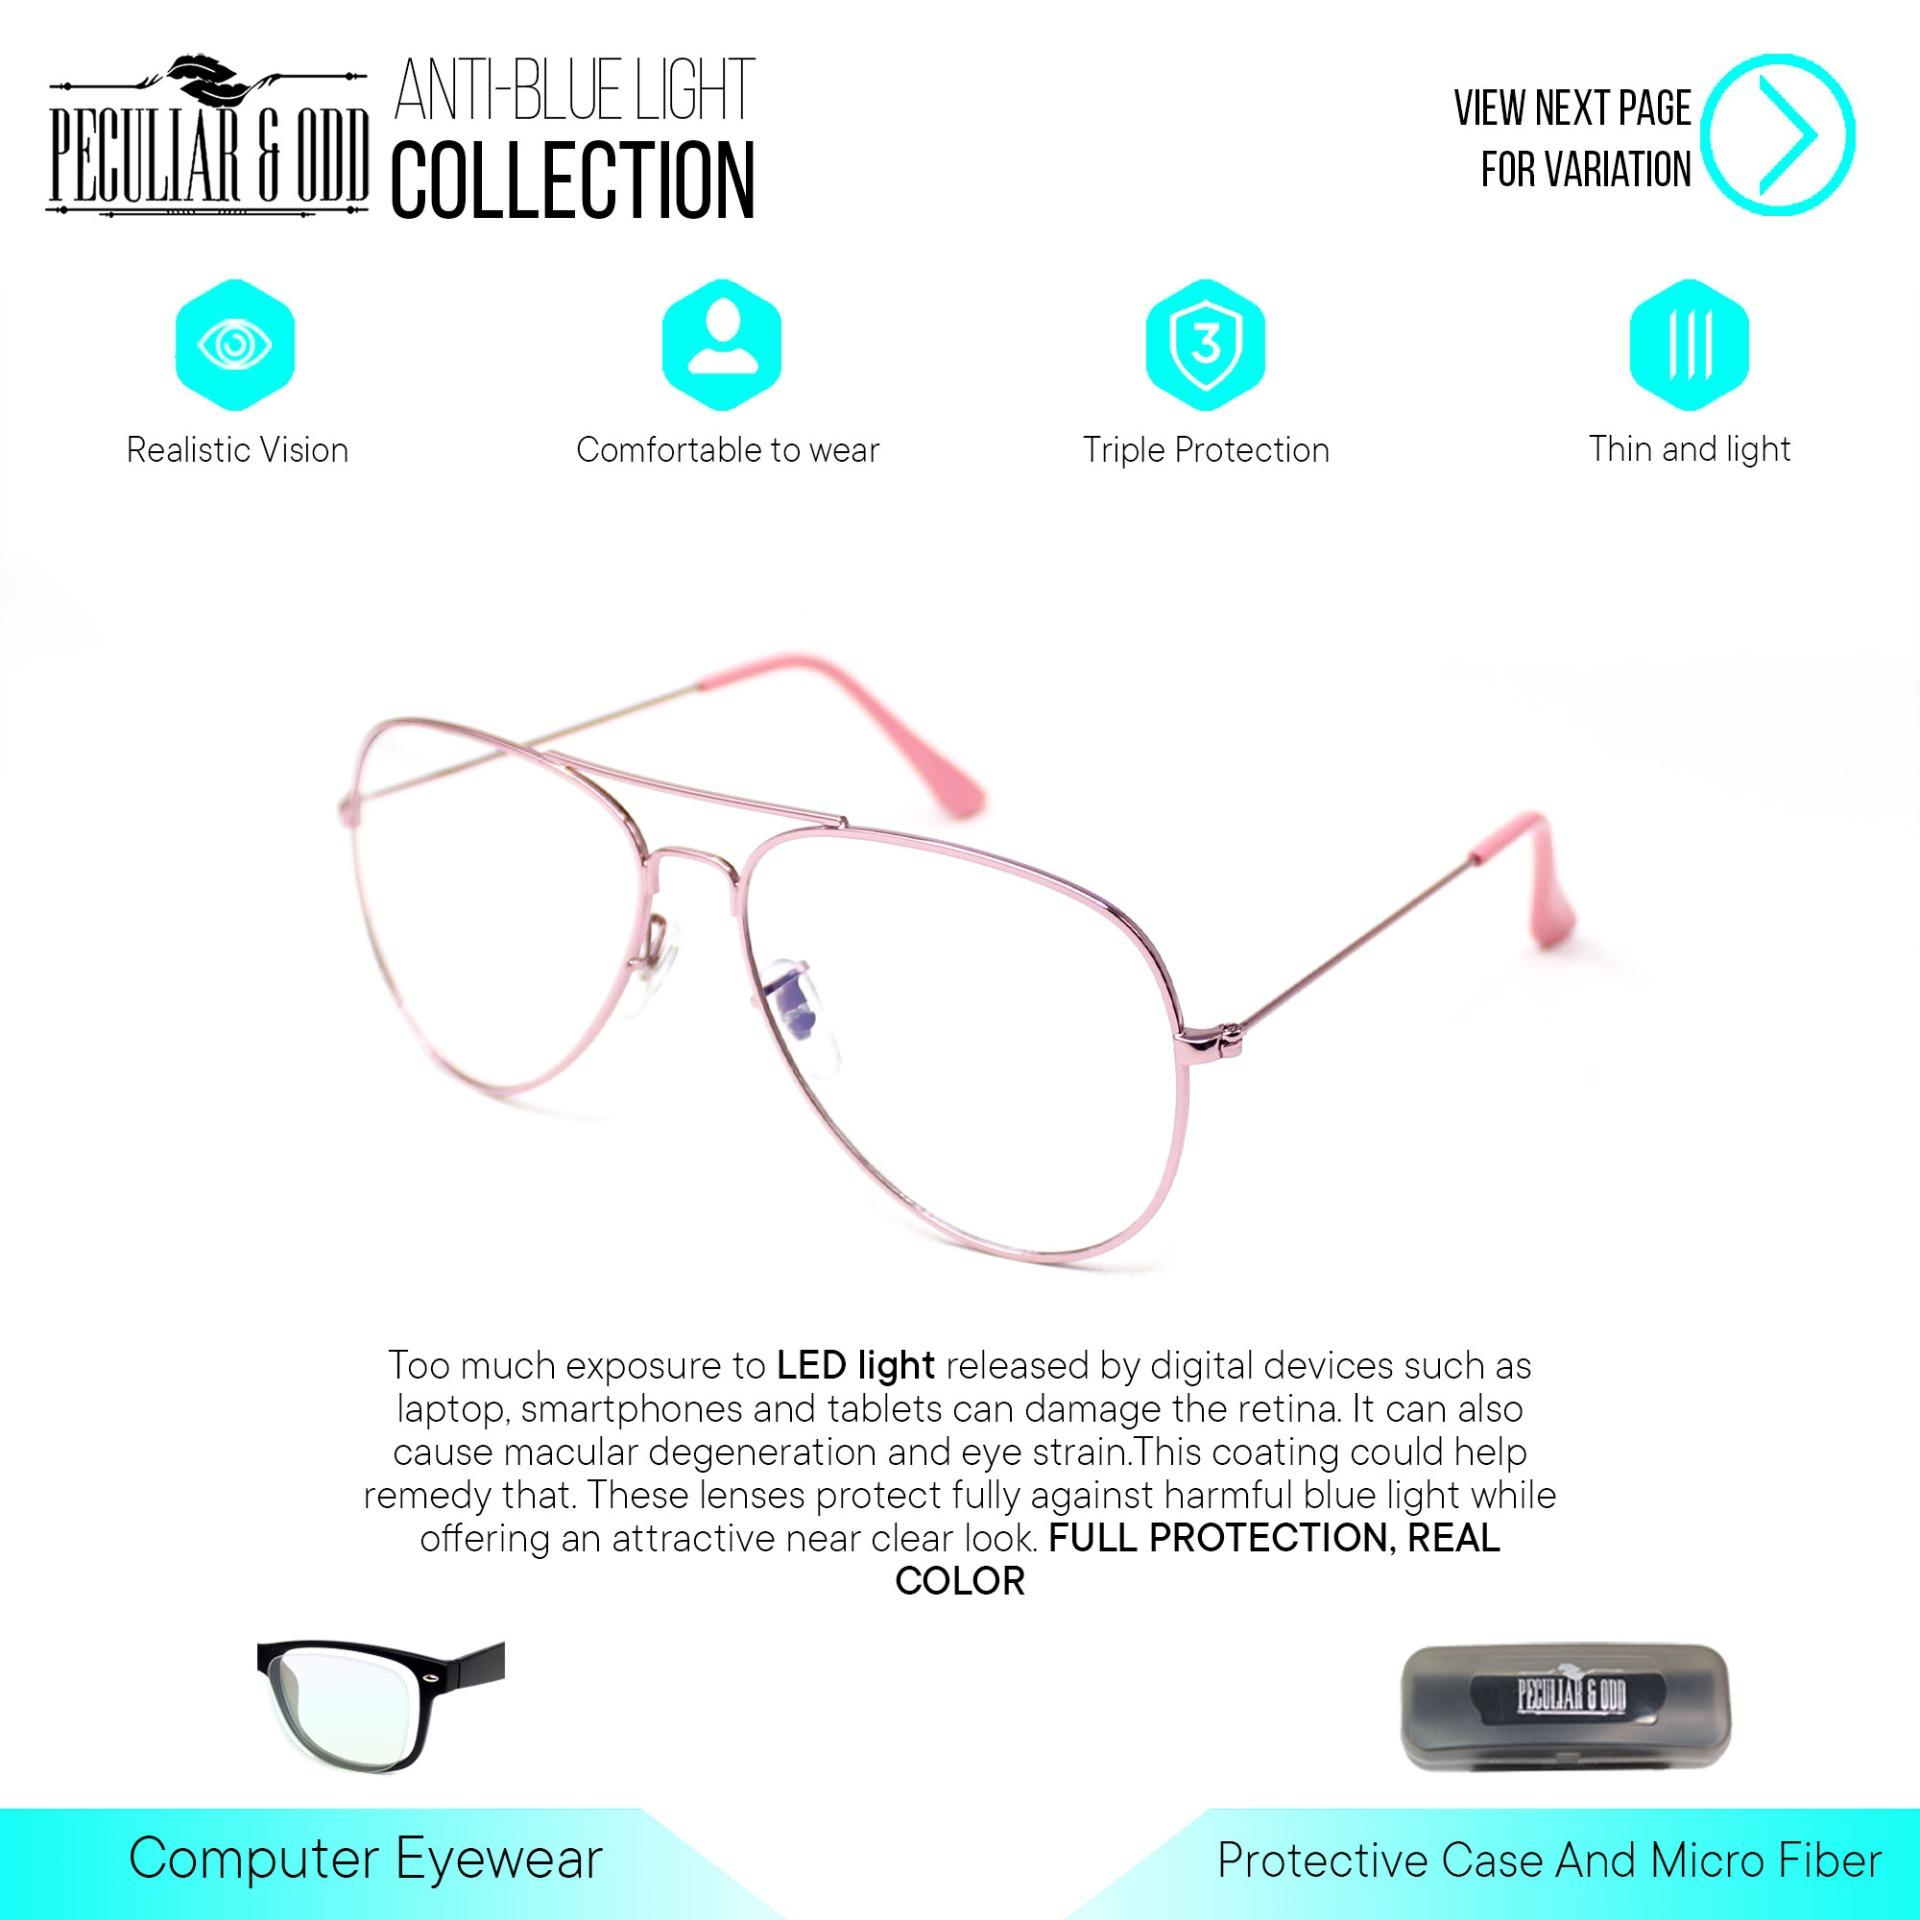 46f342472 Peculiar Aviator Pilot 3027 Anti-Radiarion Lenses in Thin Metal Frame  Lightweight Replaceable for Prescription